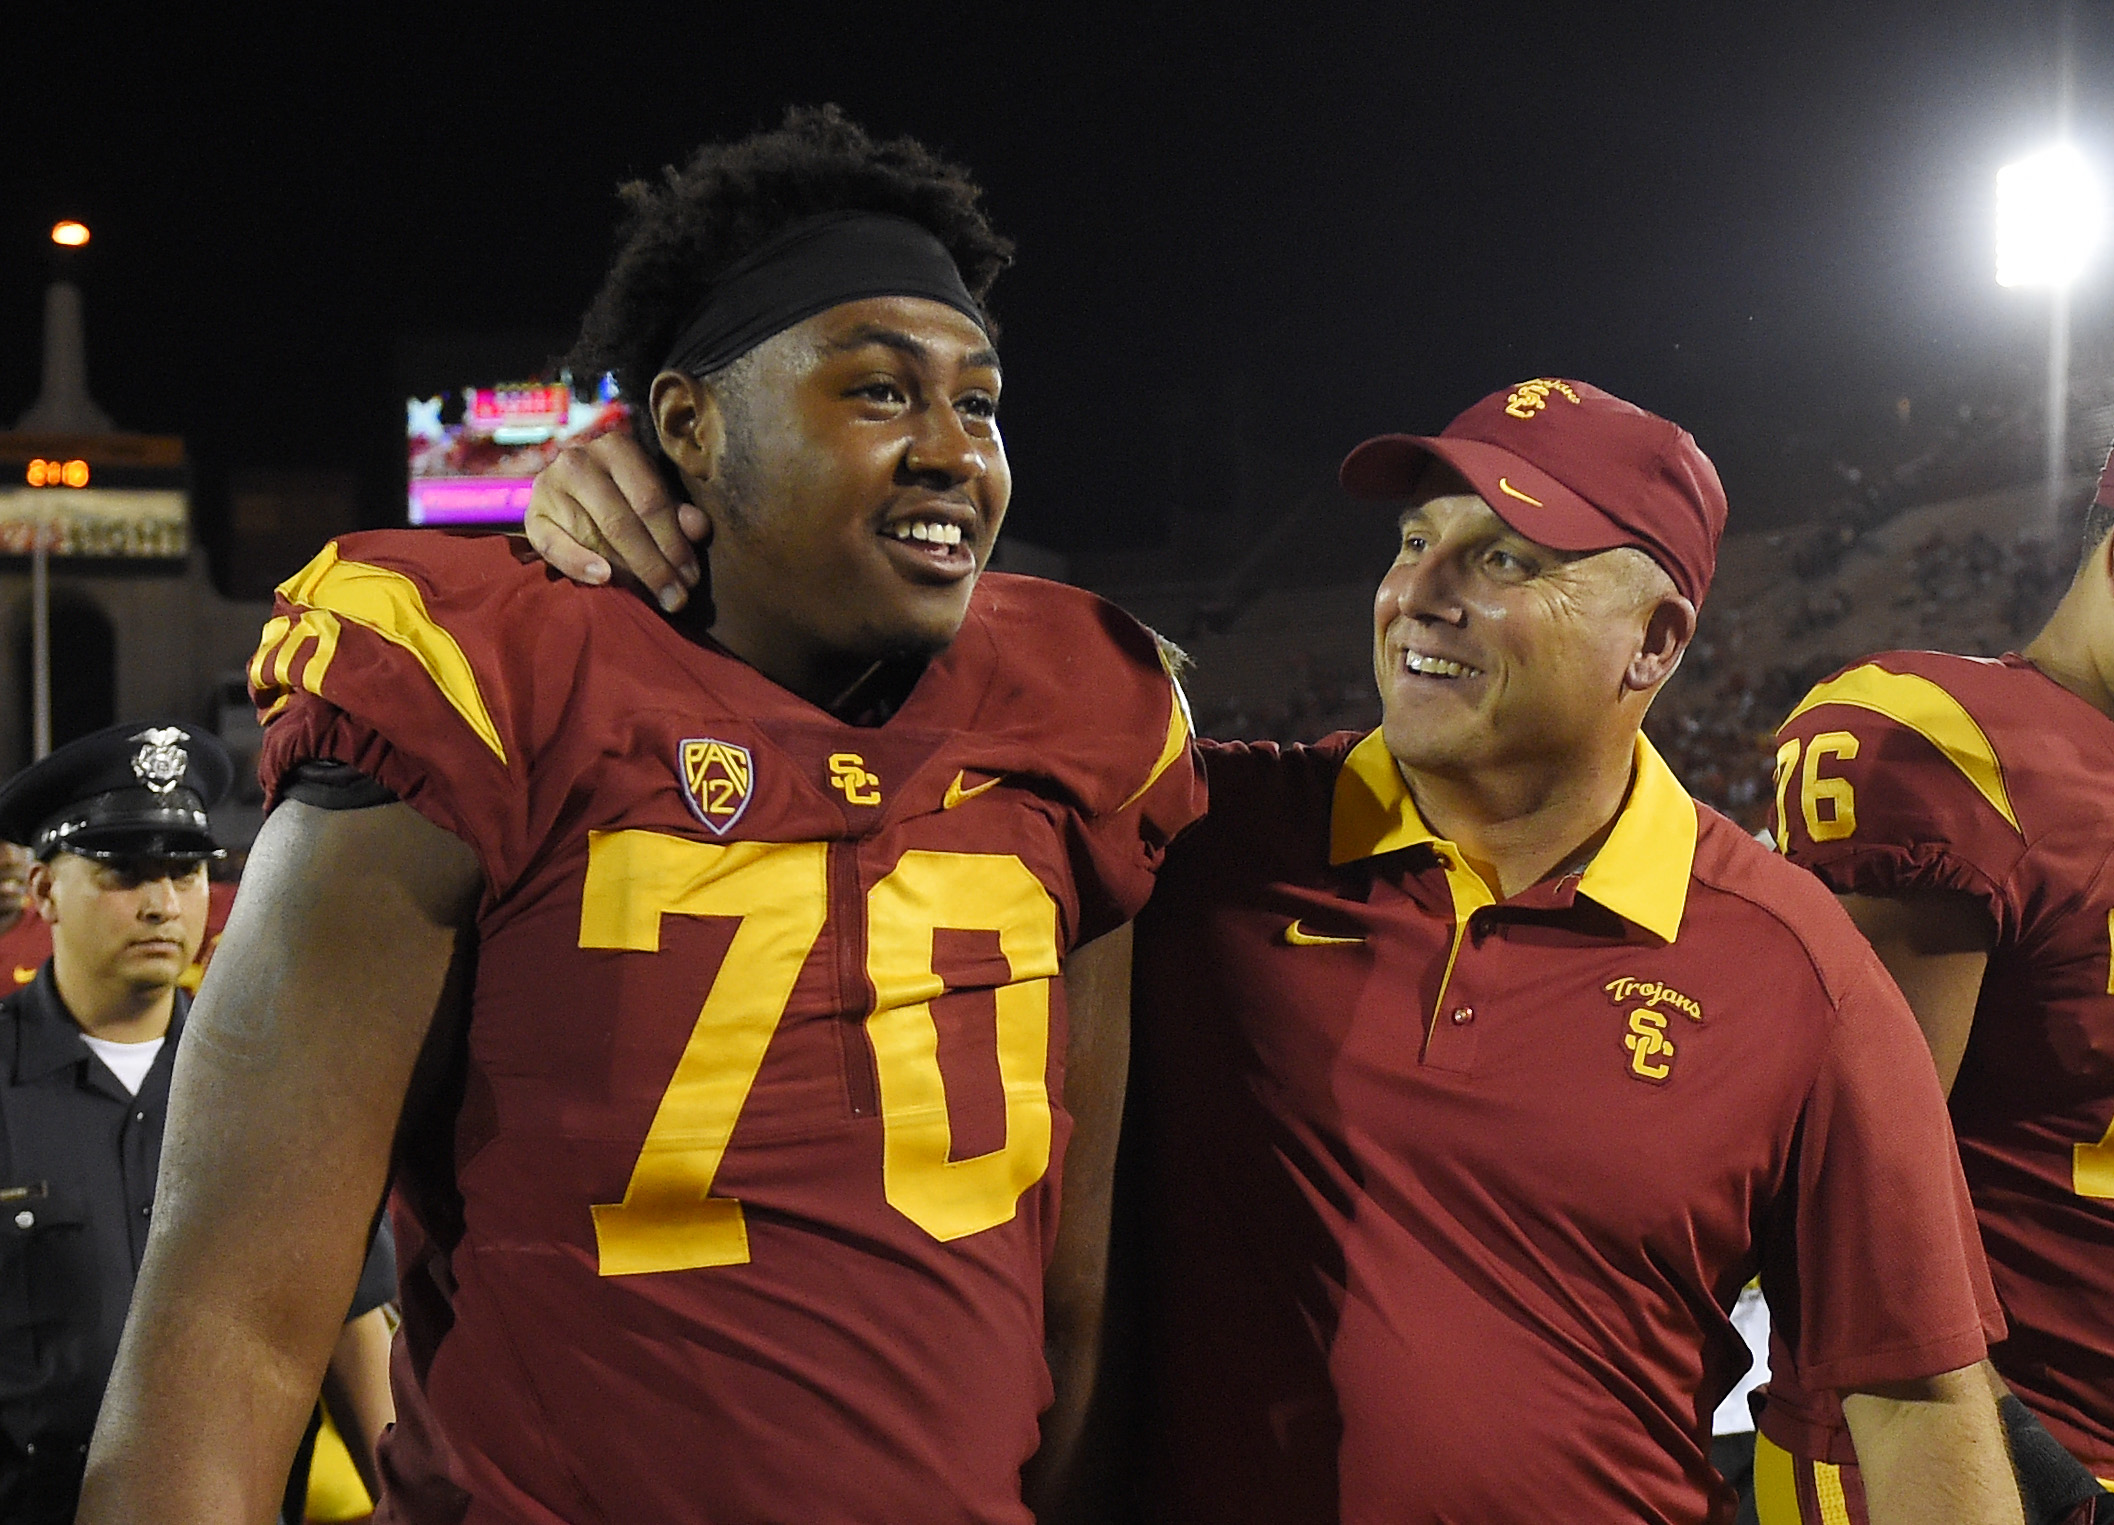 Southern California interim head coach Clay Helton, right, puts his arm around Southern California offensive tackle Chuma Edoga as they walk off the field after USC defeated Utah 42-24 in a NCAA college football game, Saturday, Oct. 24, 2015, in Los Angel